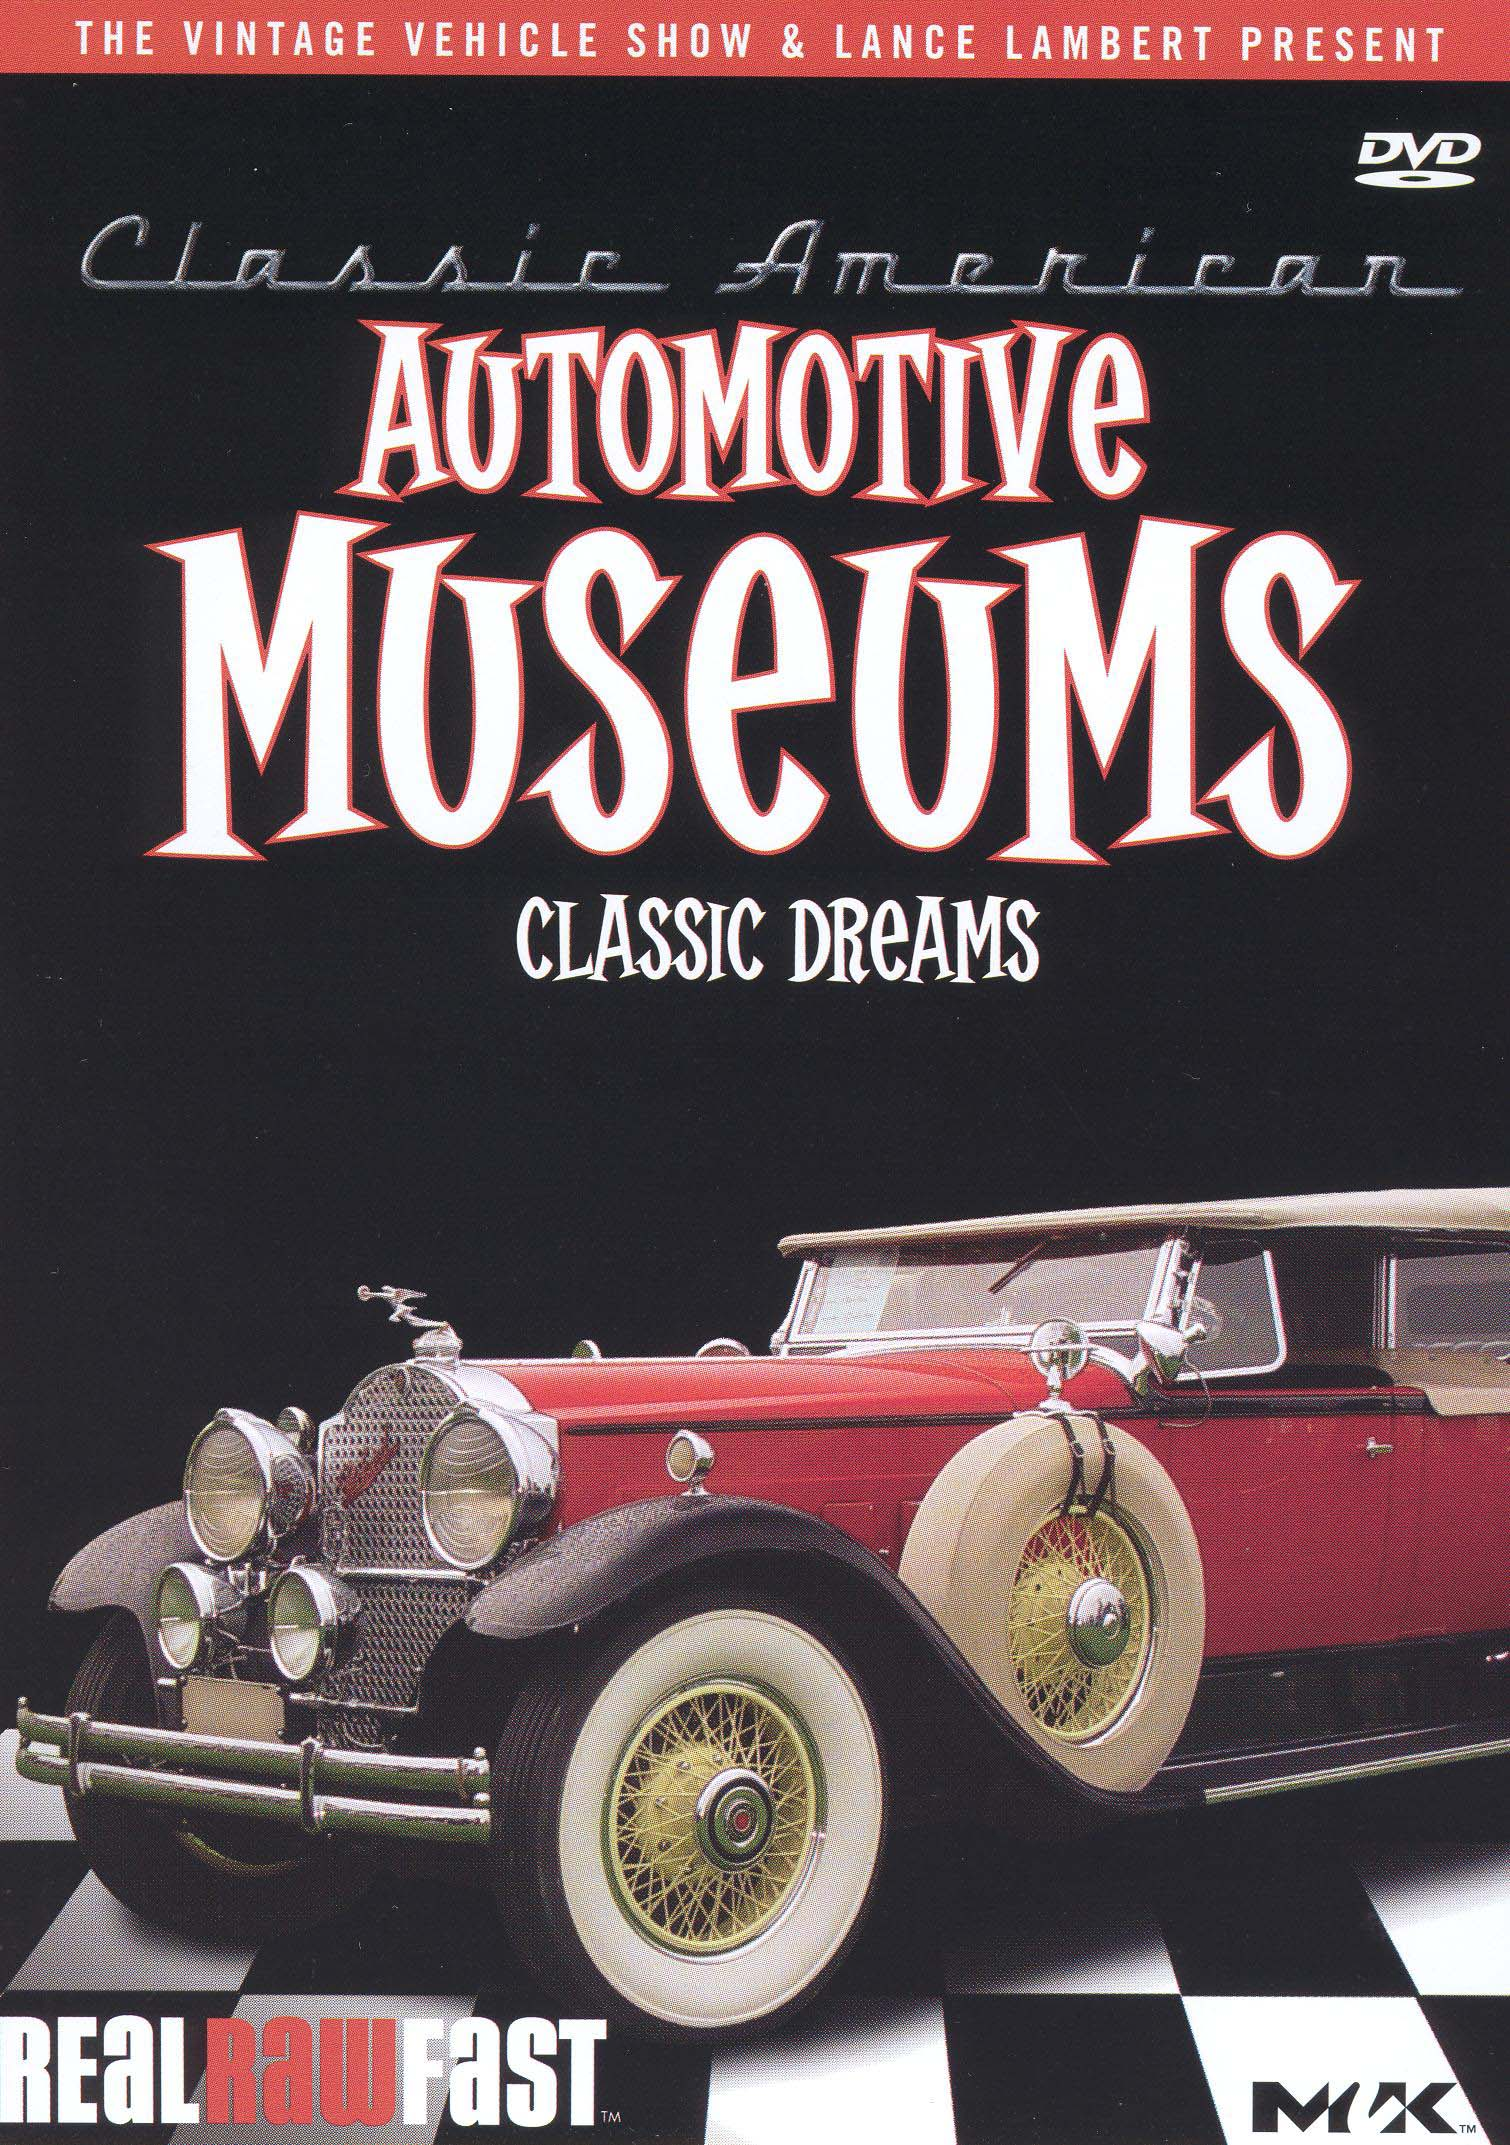 Classic American Automotive Museums: Classic Dreams